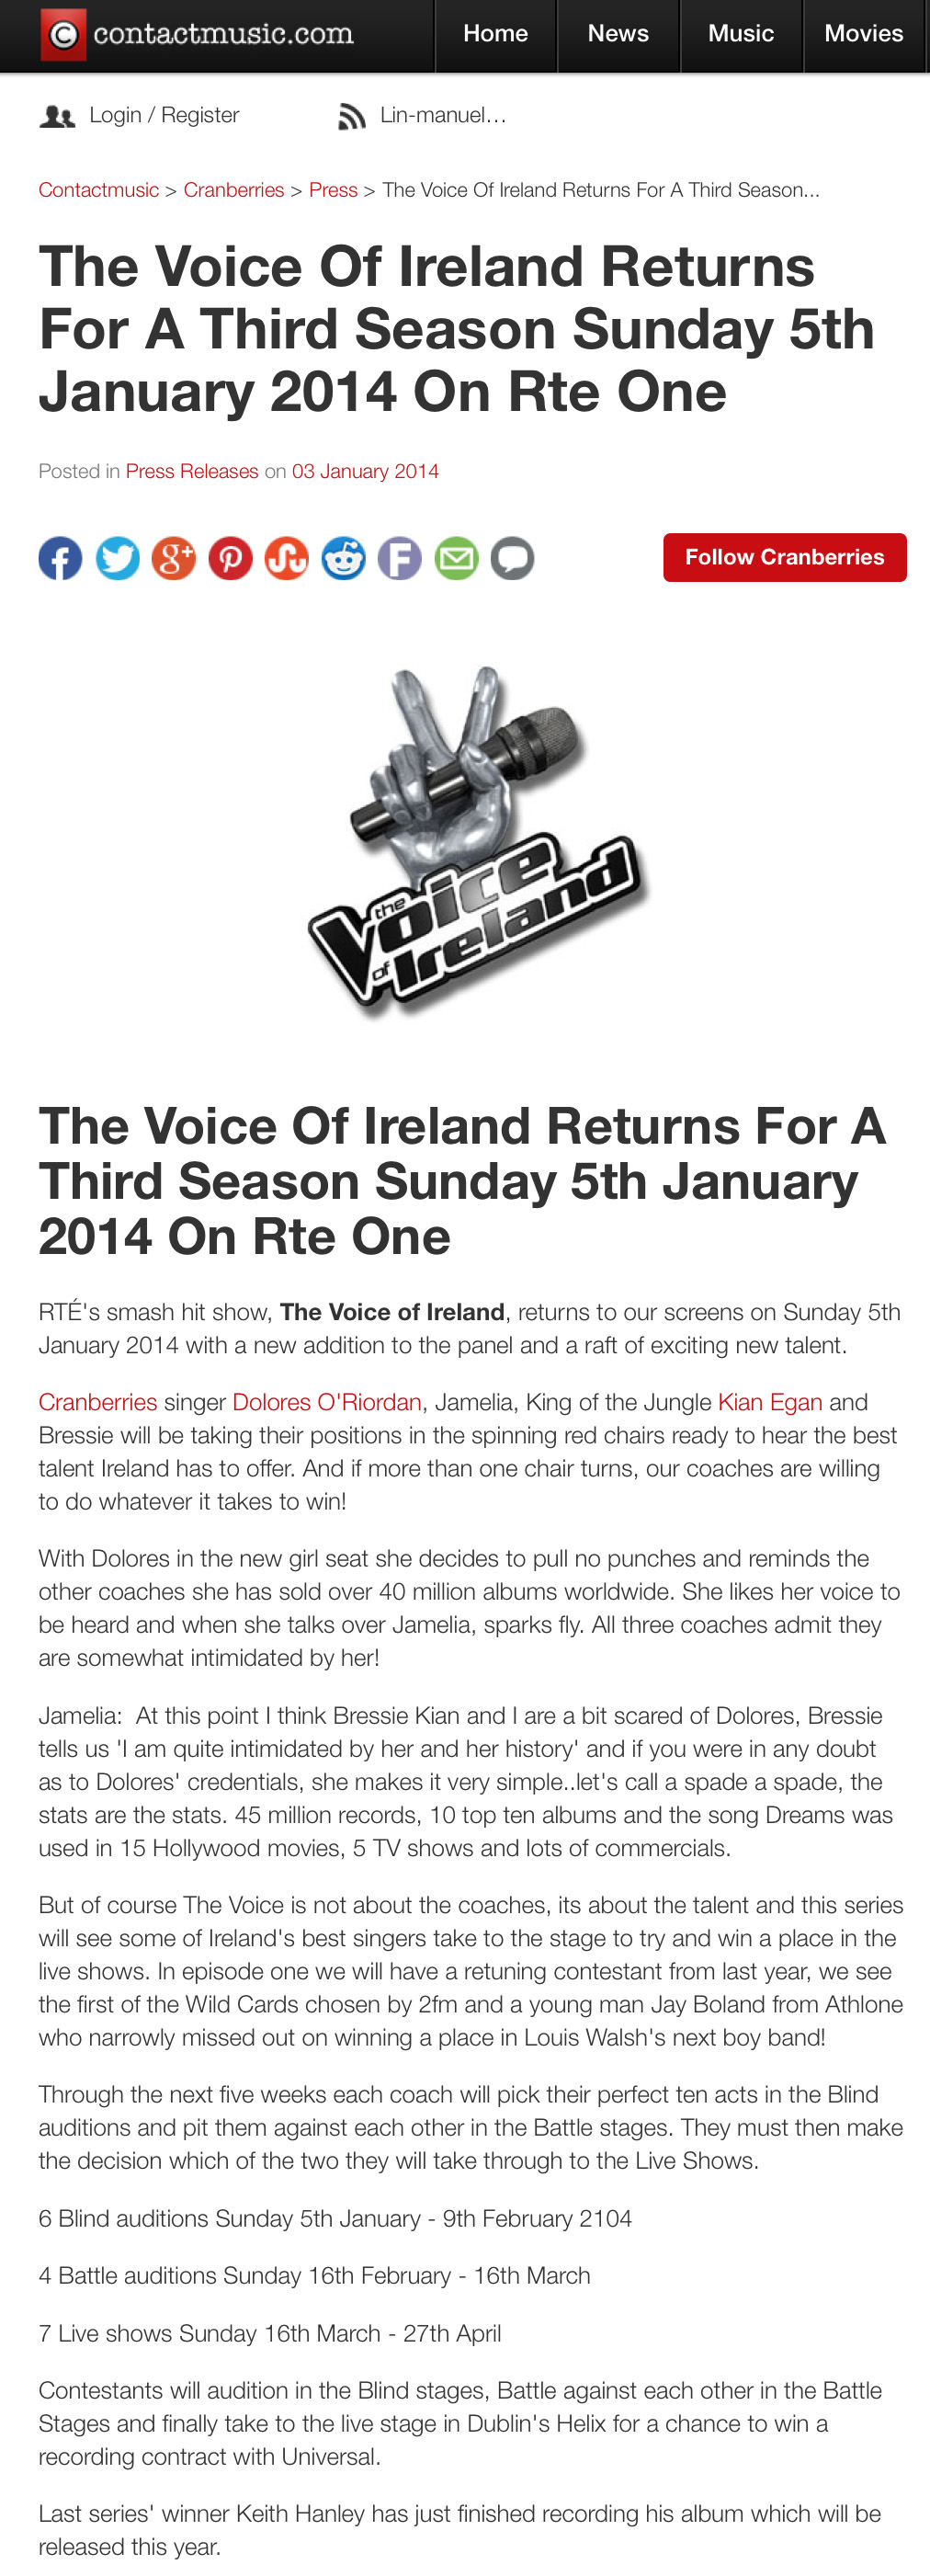 """The Voice of Ireland"""" to premiere this Sunday 